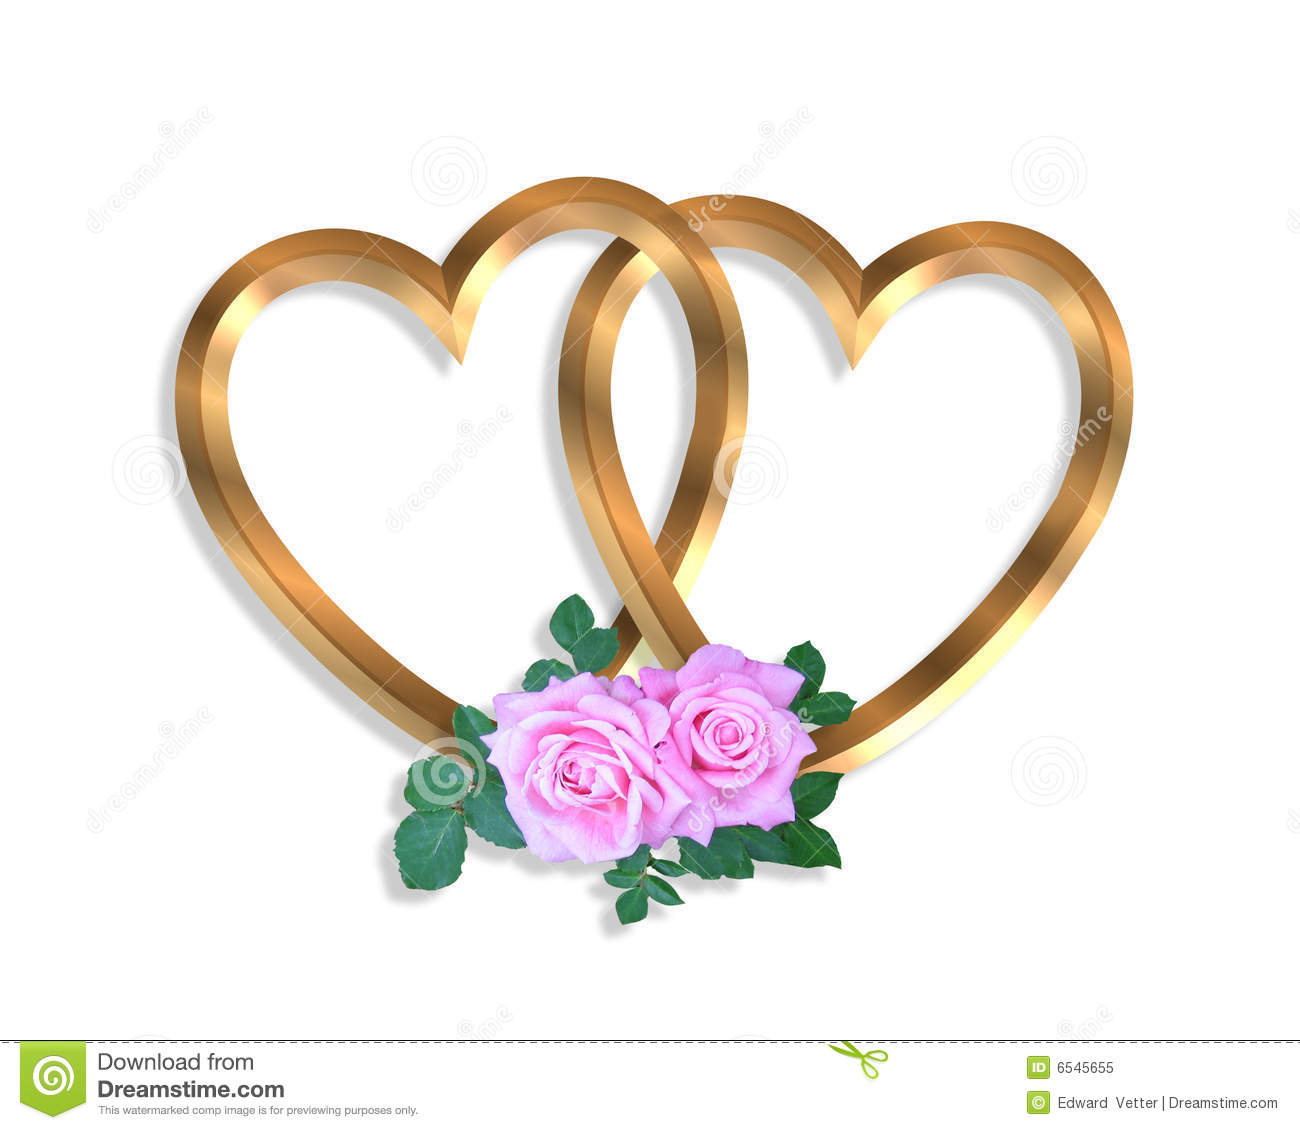 Wedding Hearts Clipart Image Gallery wedding ...